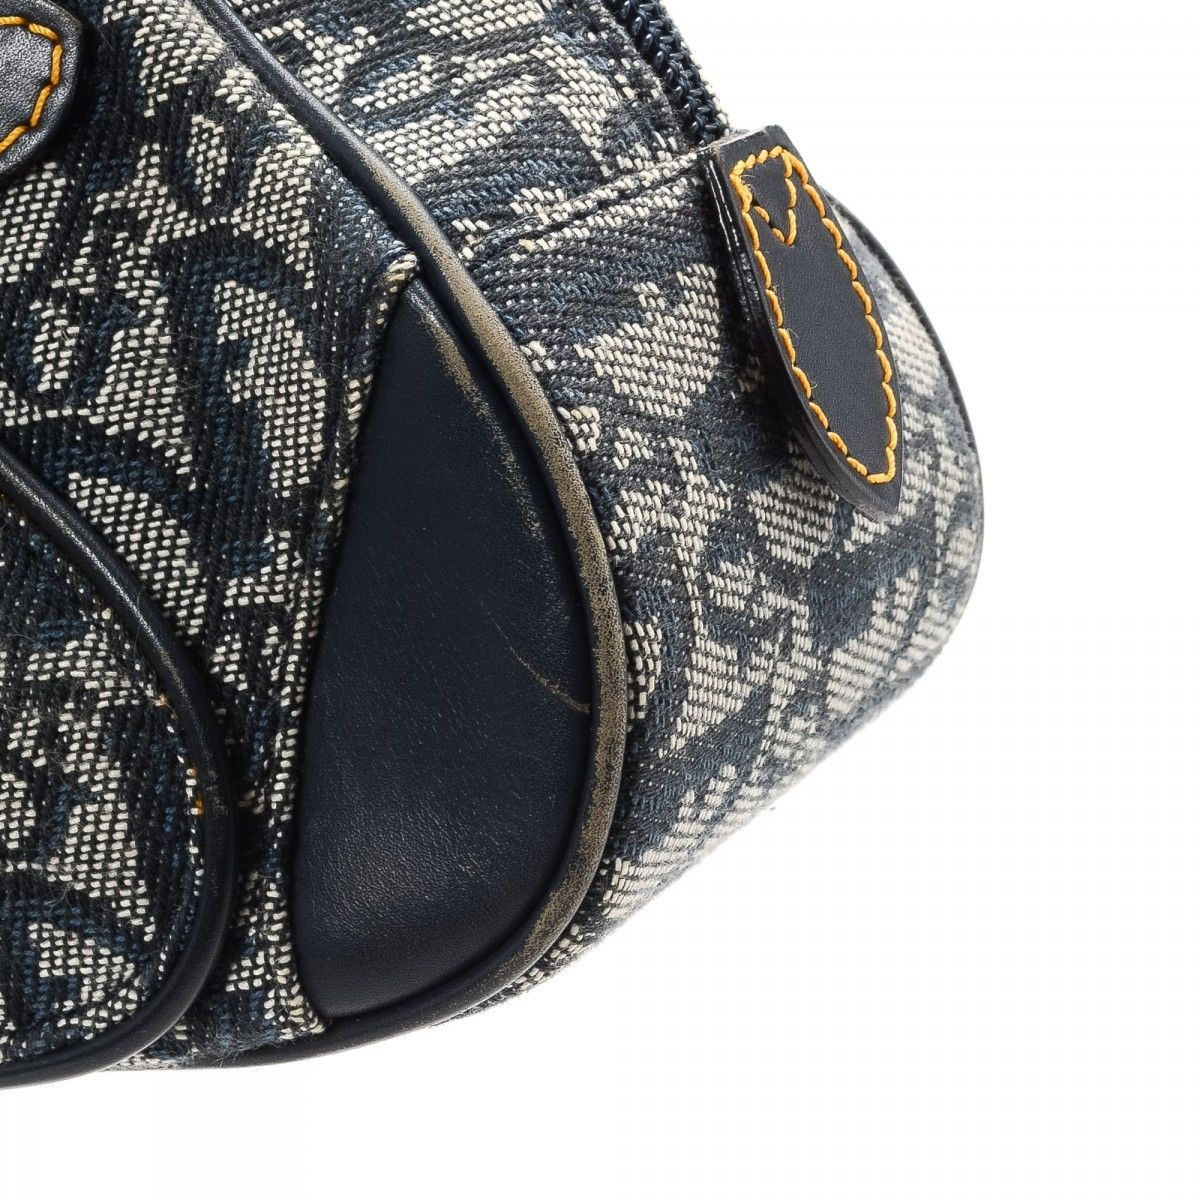 0759c8859 Dior Saddle Bowling Mini Bag Trotter Canvas - LXRandCo - Pre-Owned ...